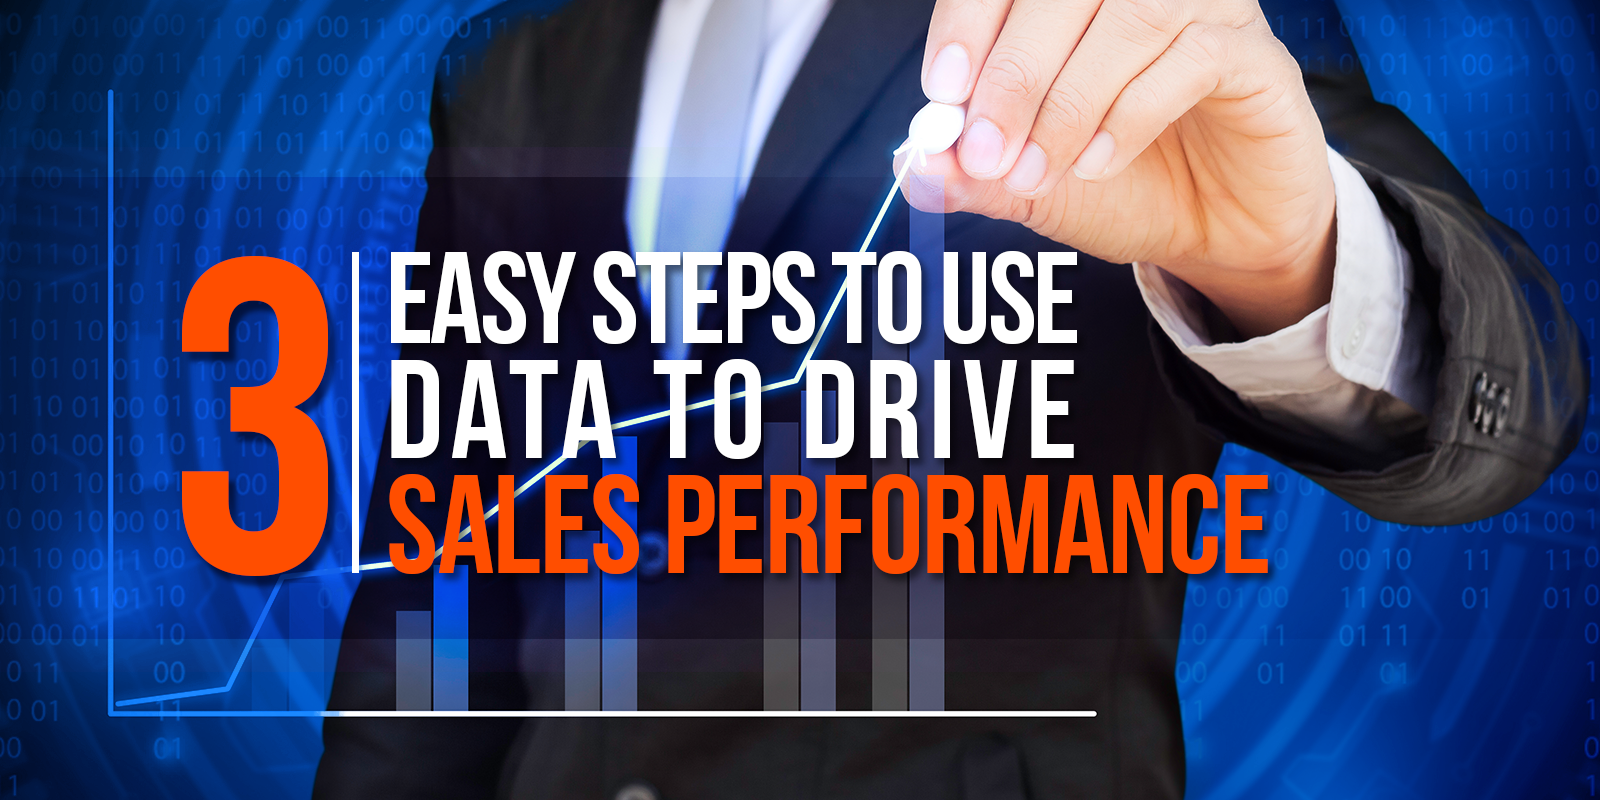 3 Easy Steps To Use Data to Drive Sales Performance